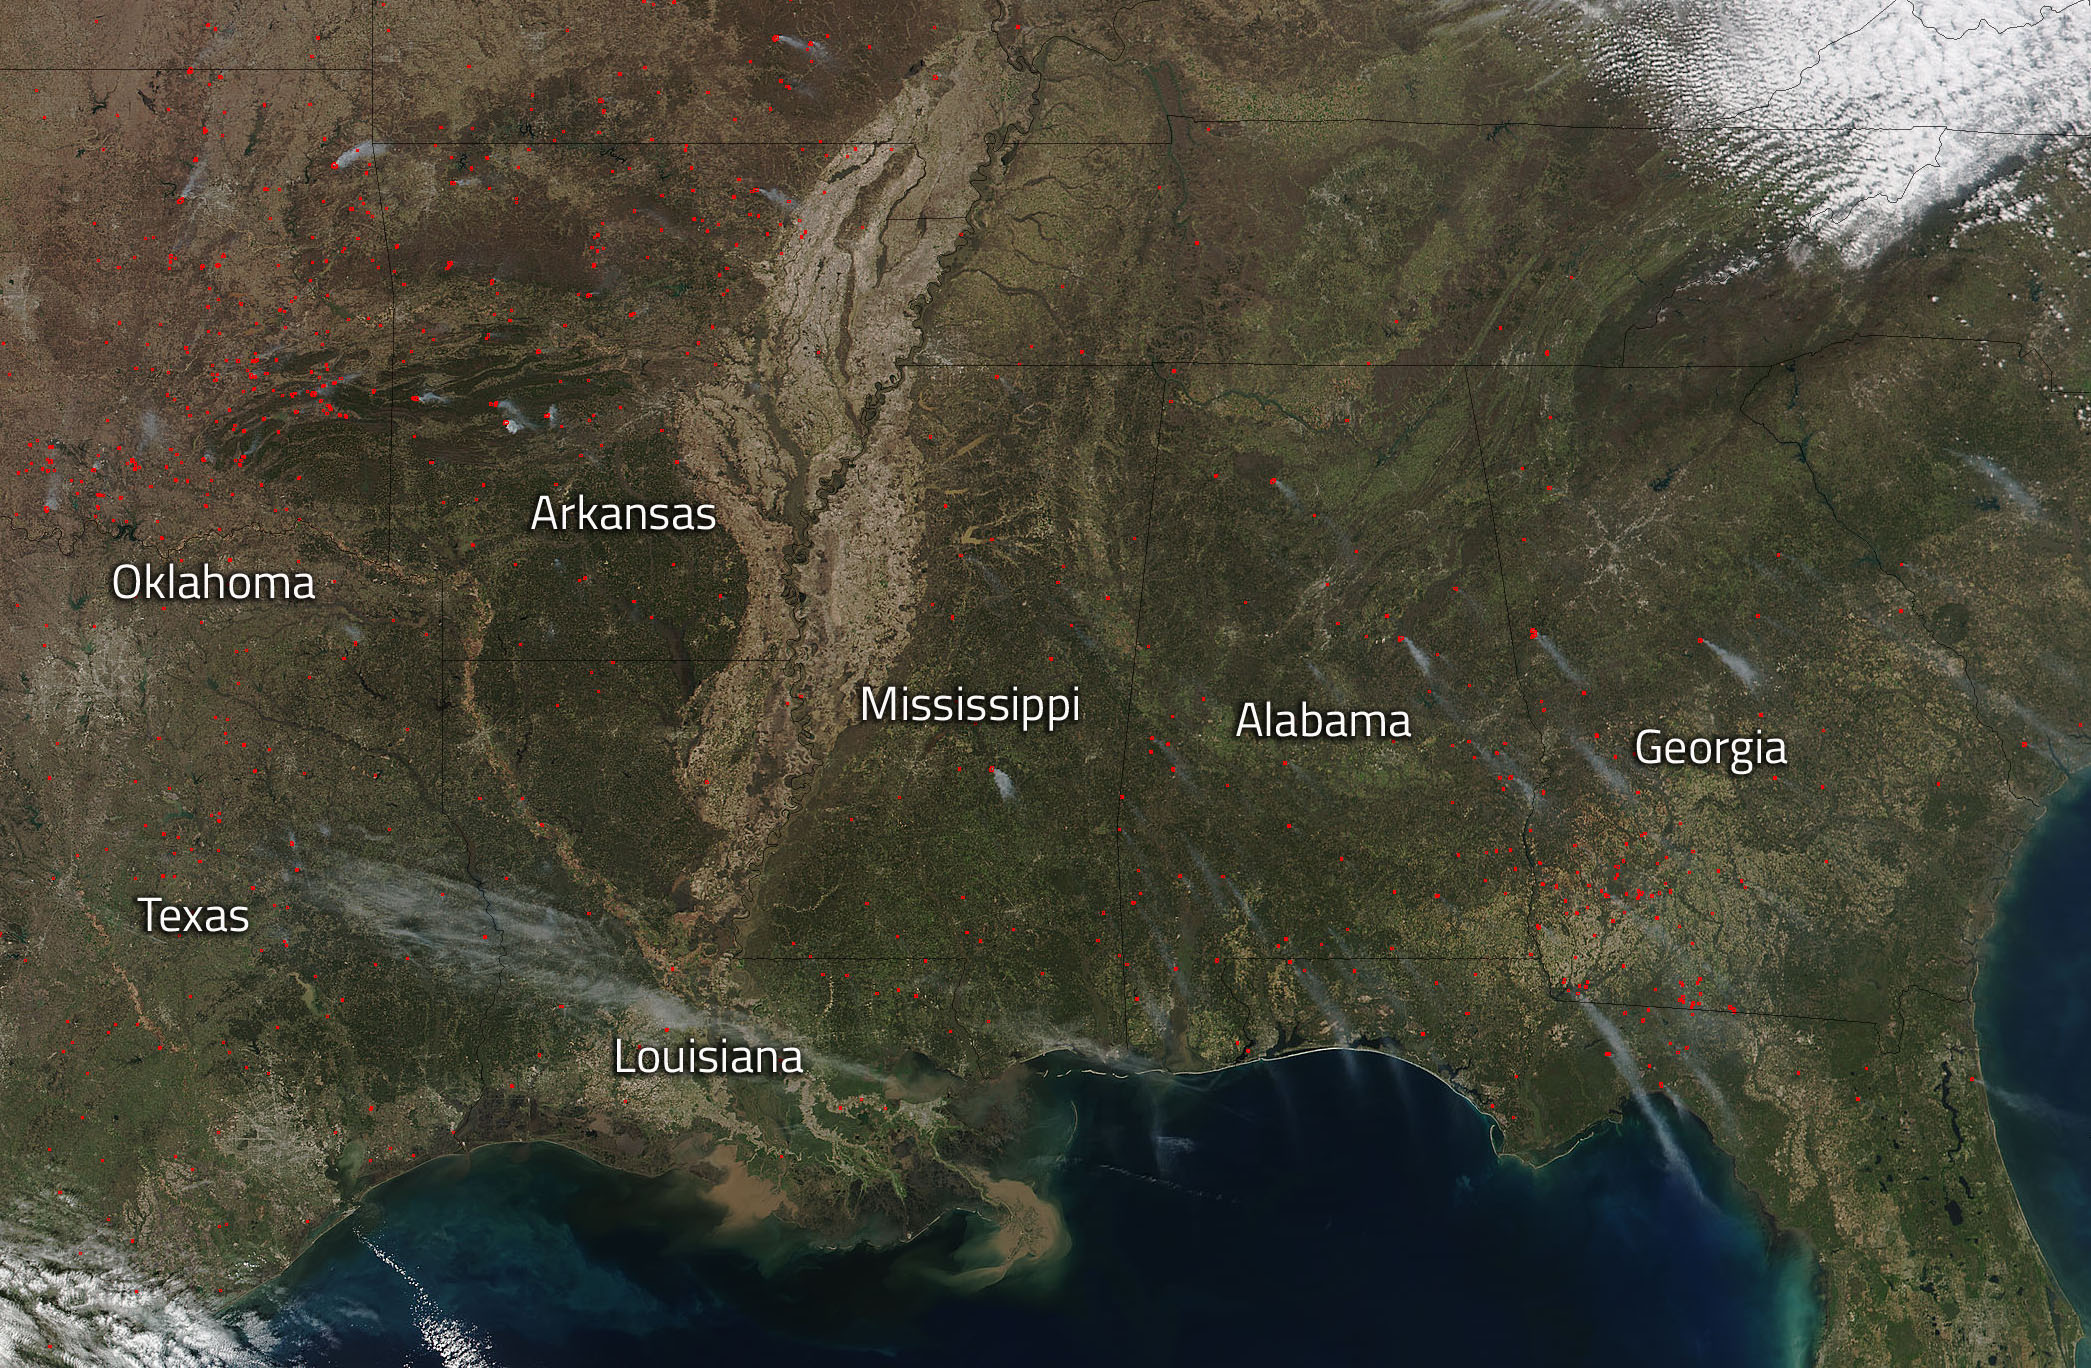 Southeastern Us Sees Wildfire Activity Nasa - Us-wildfire-activity-map